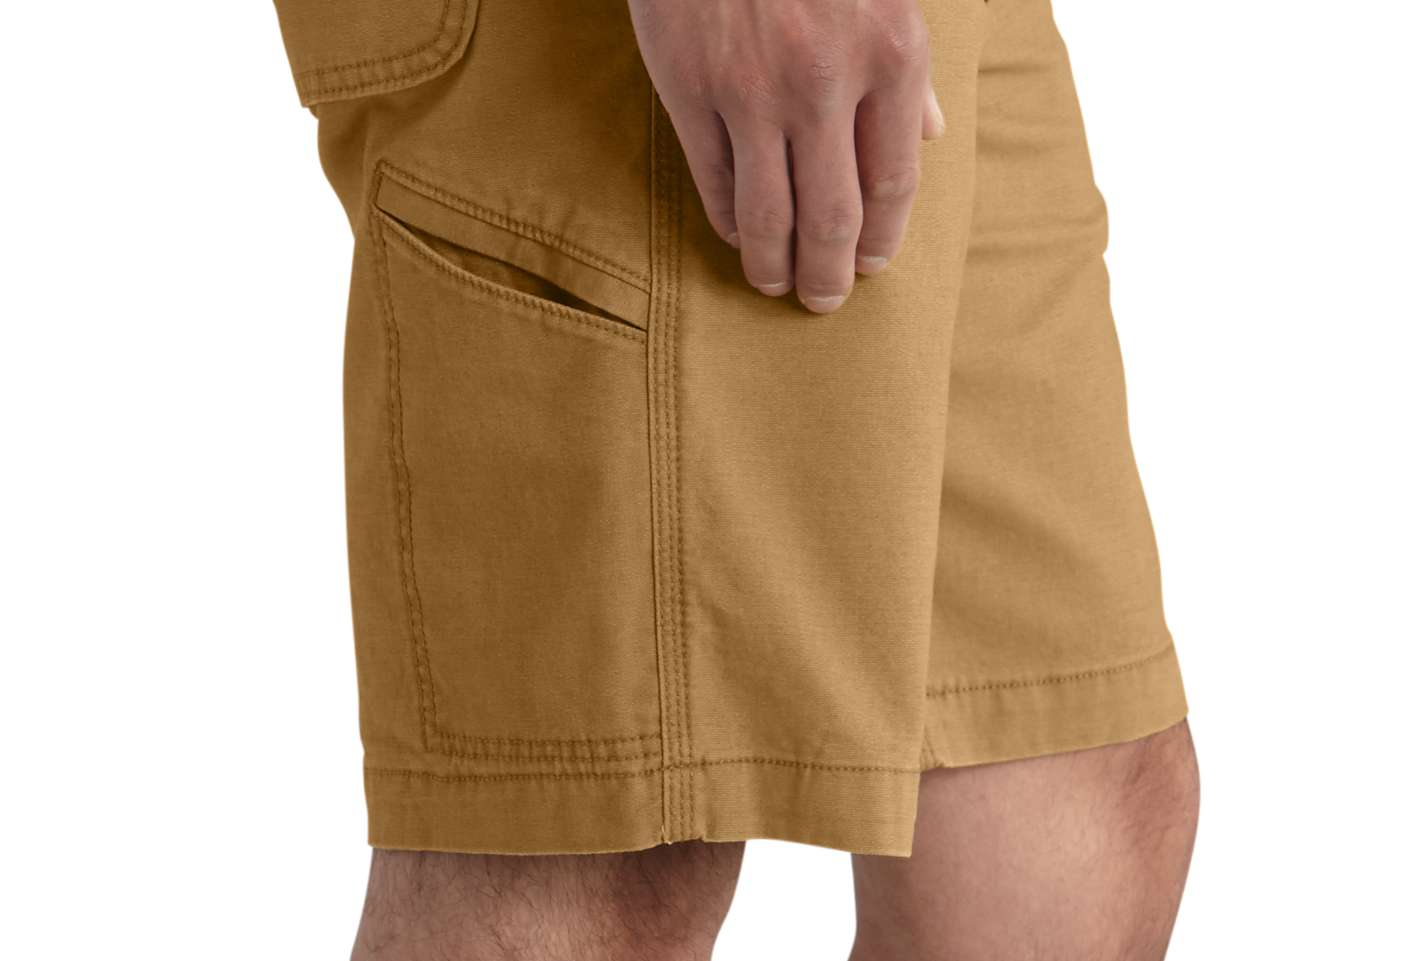 Right-leg cell phone pocket for quick, easy access